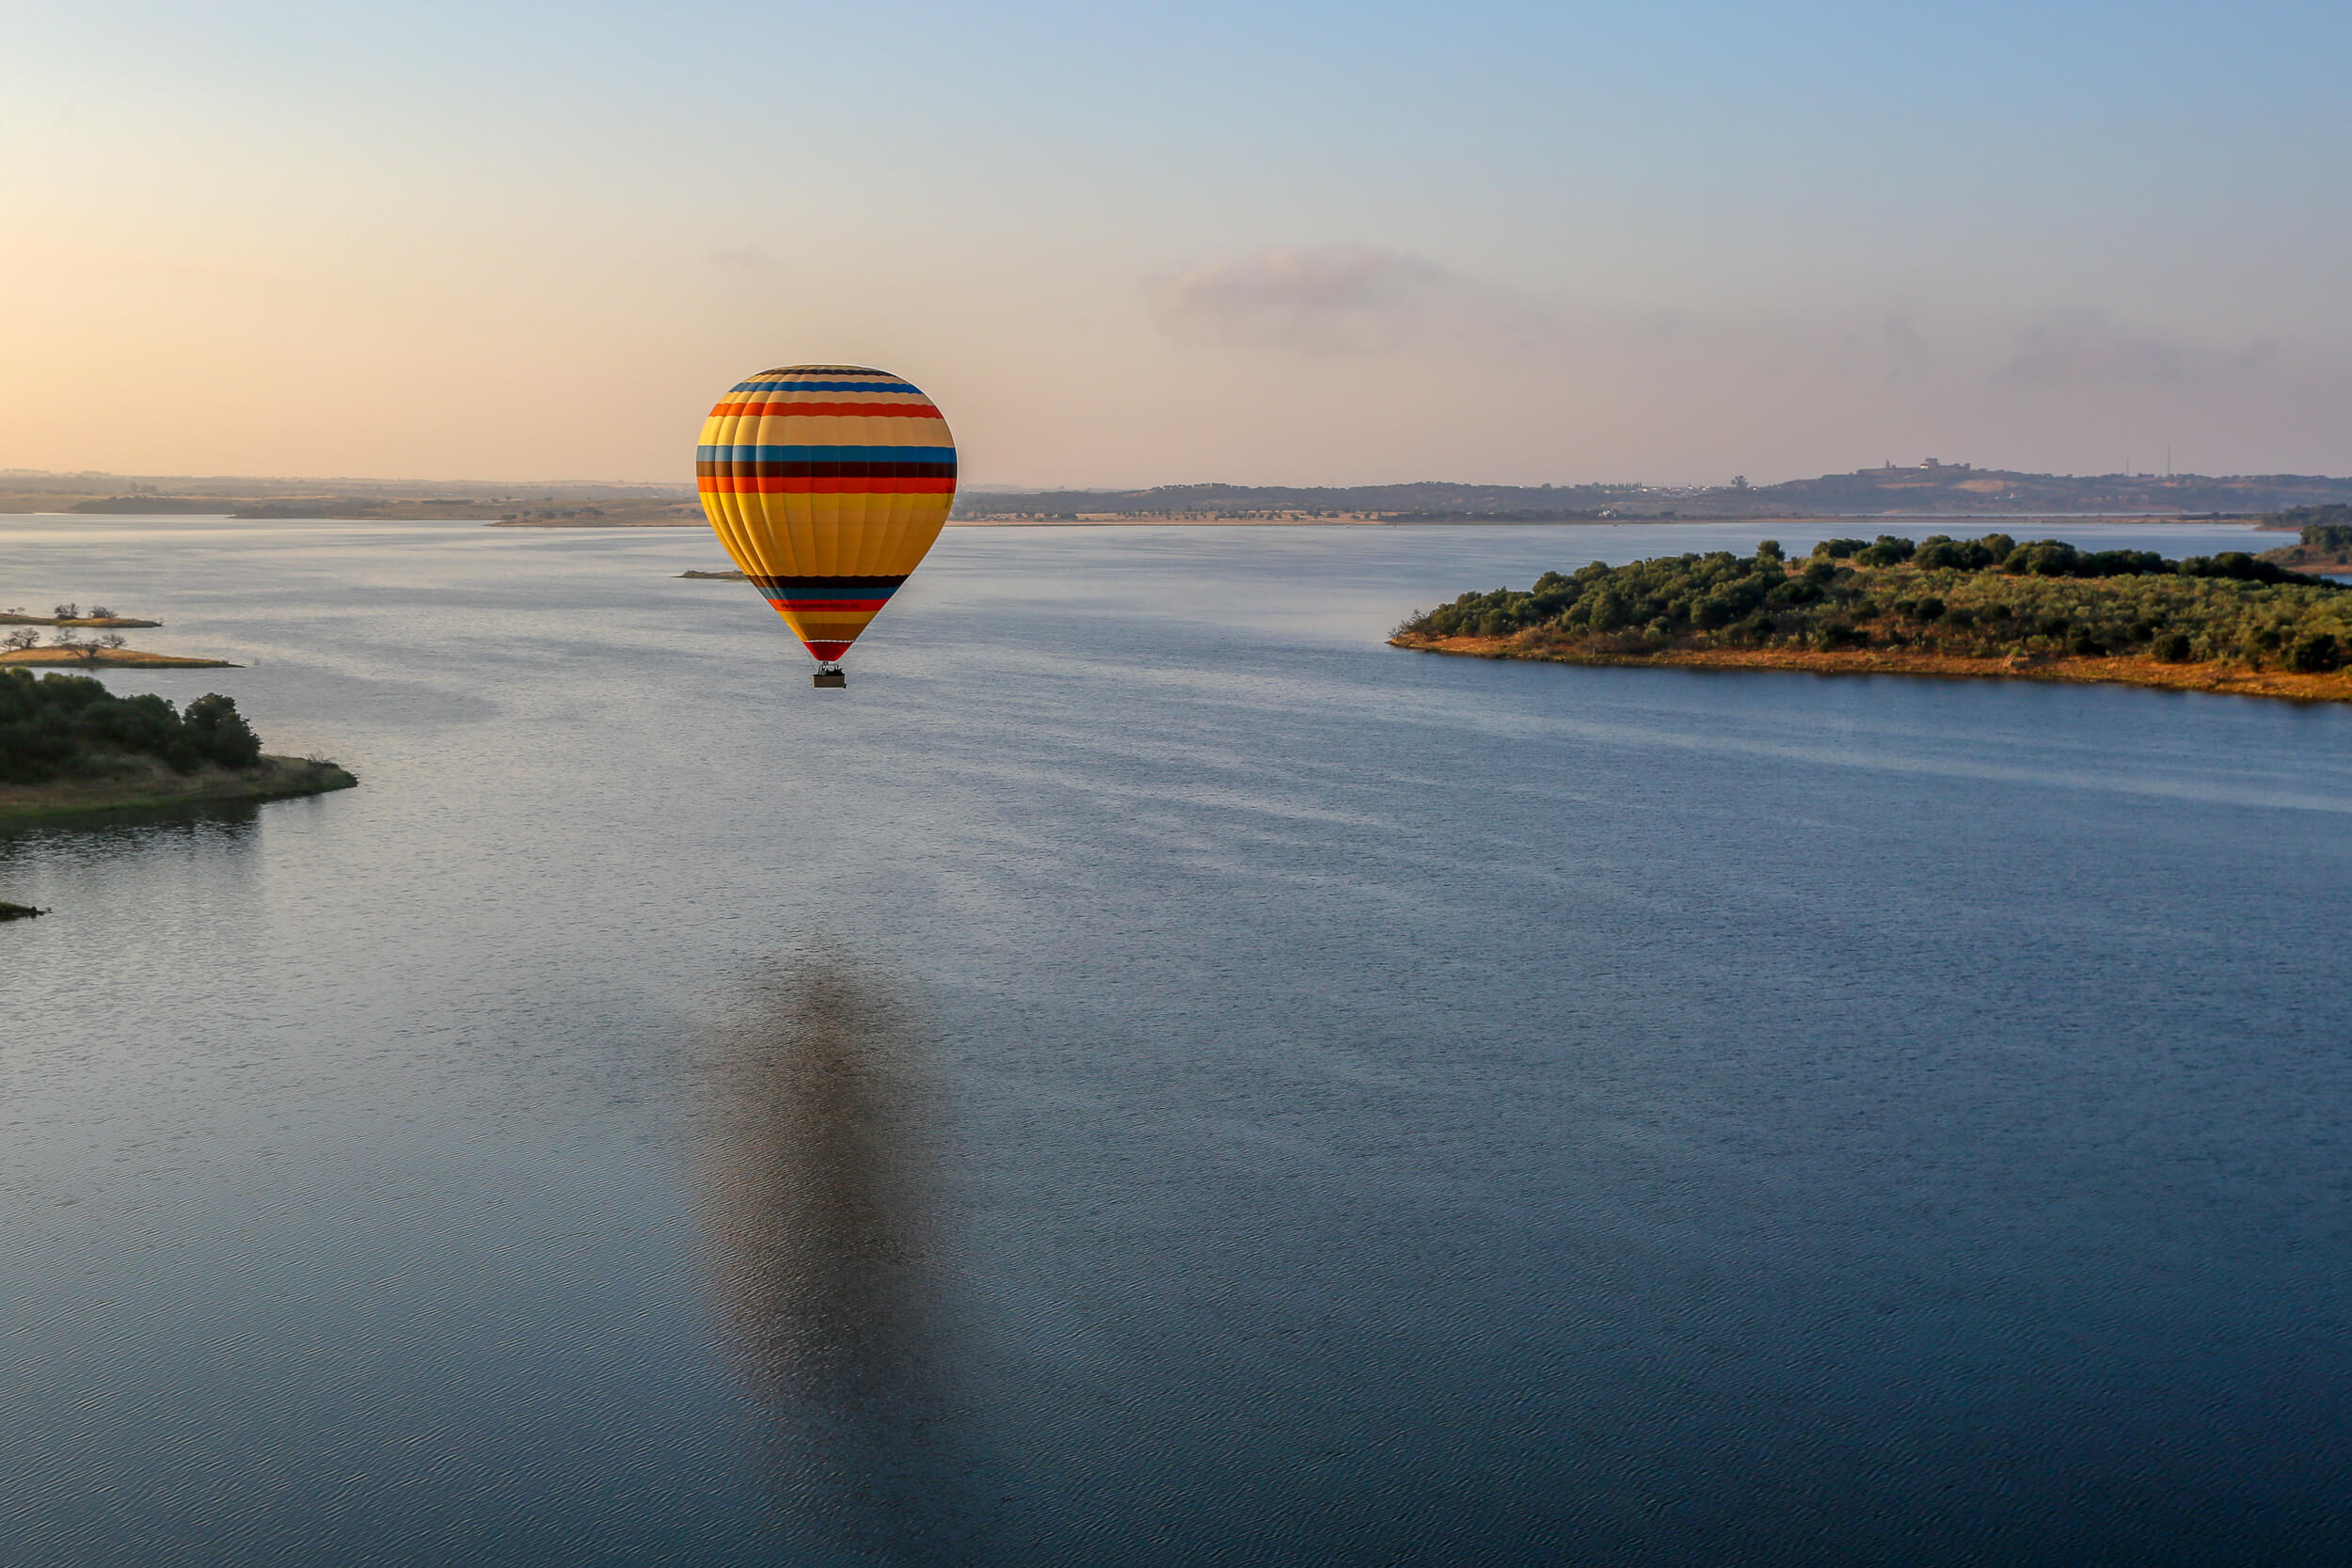 Balloon over Alqueva Reservoir